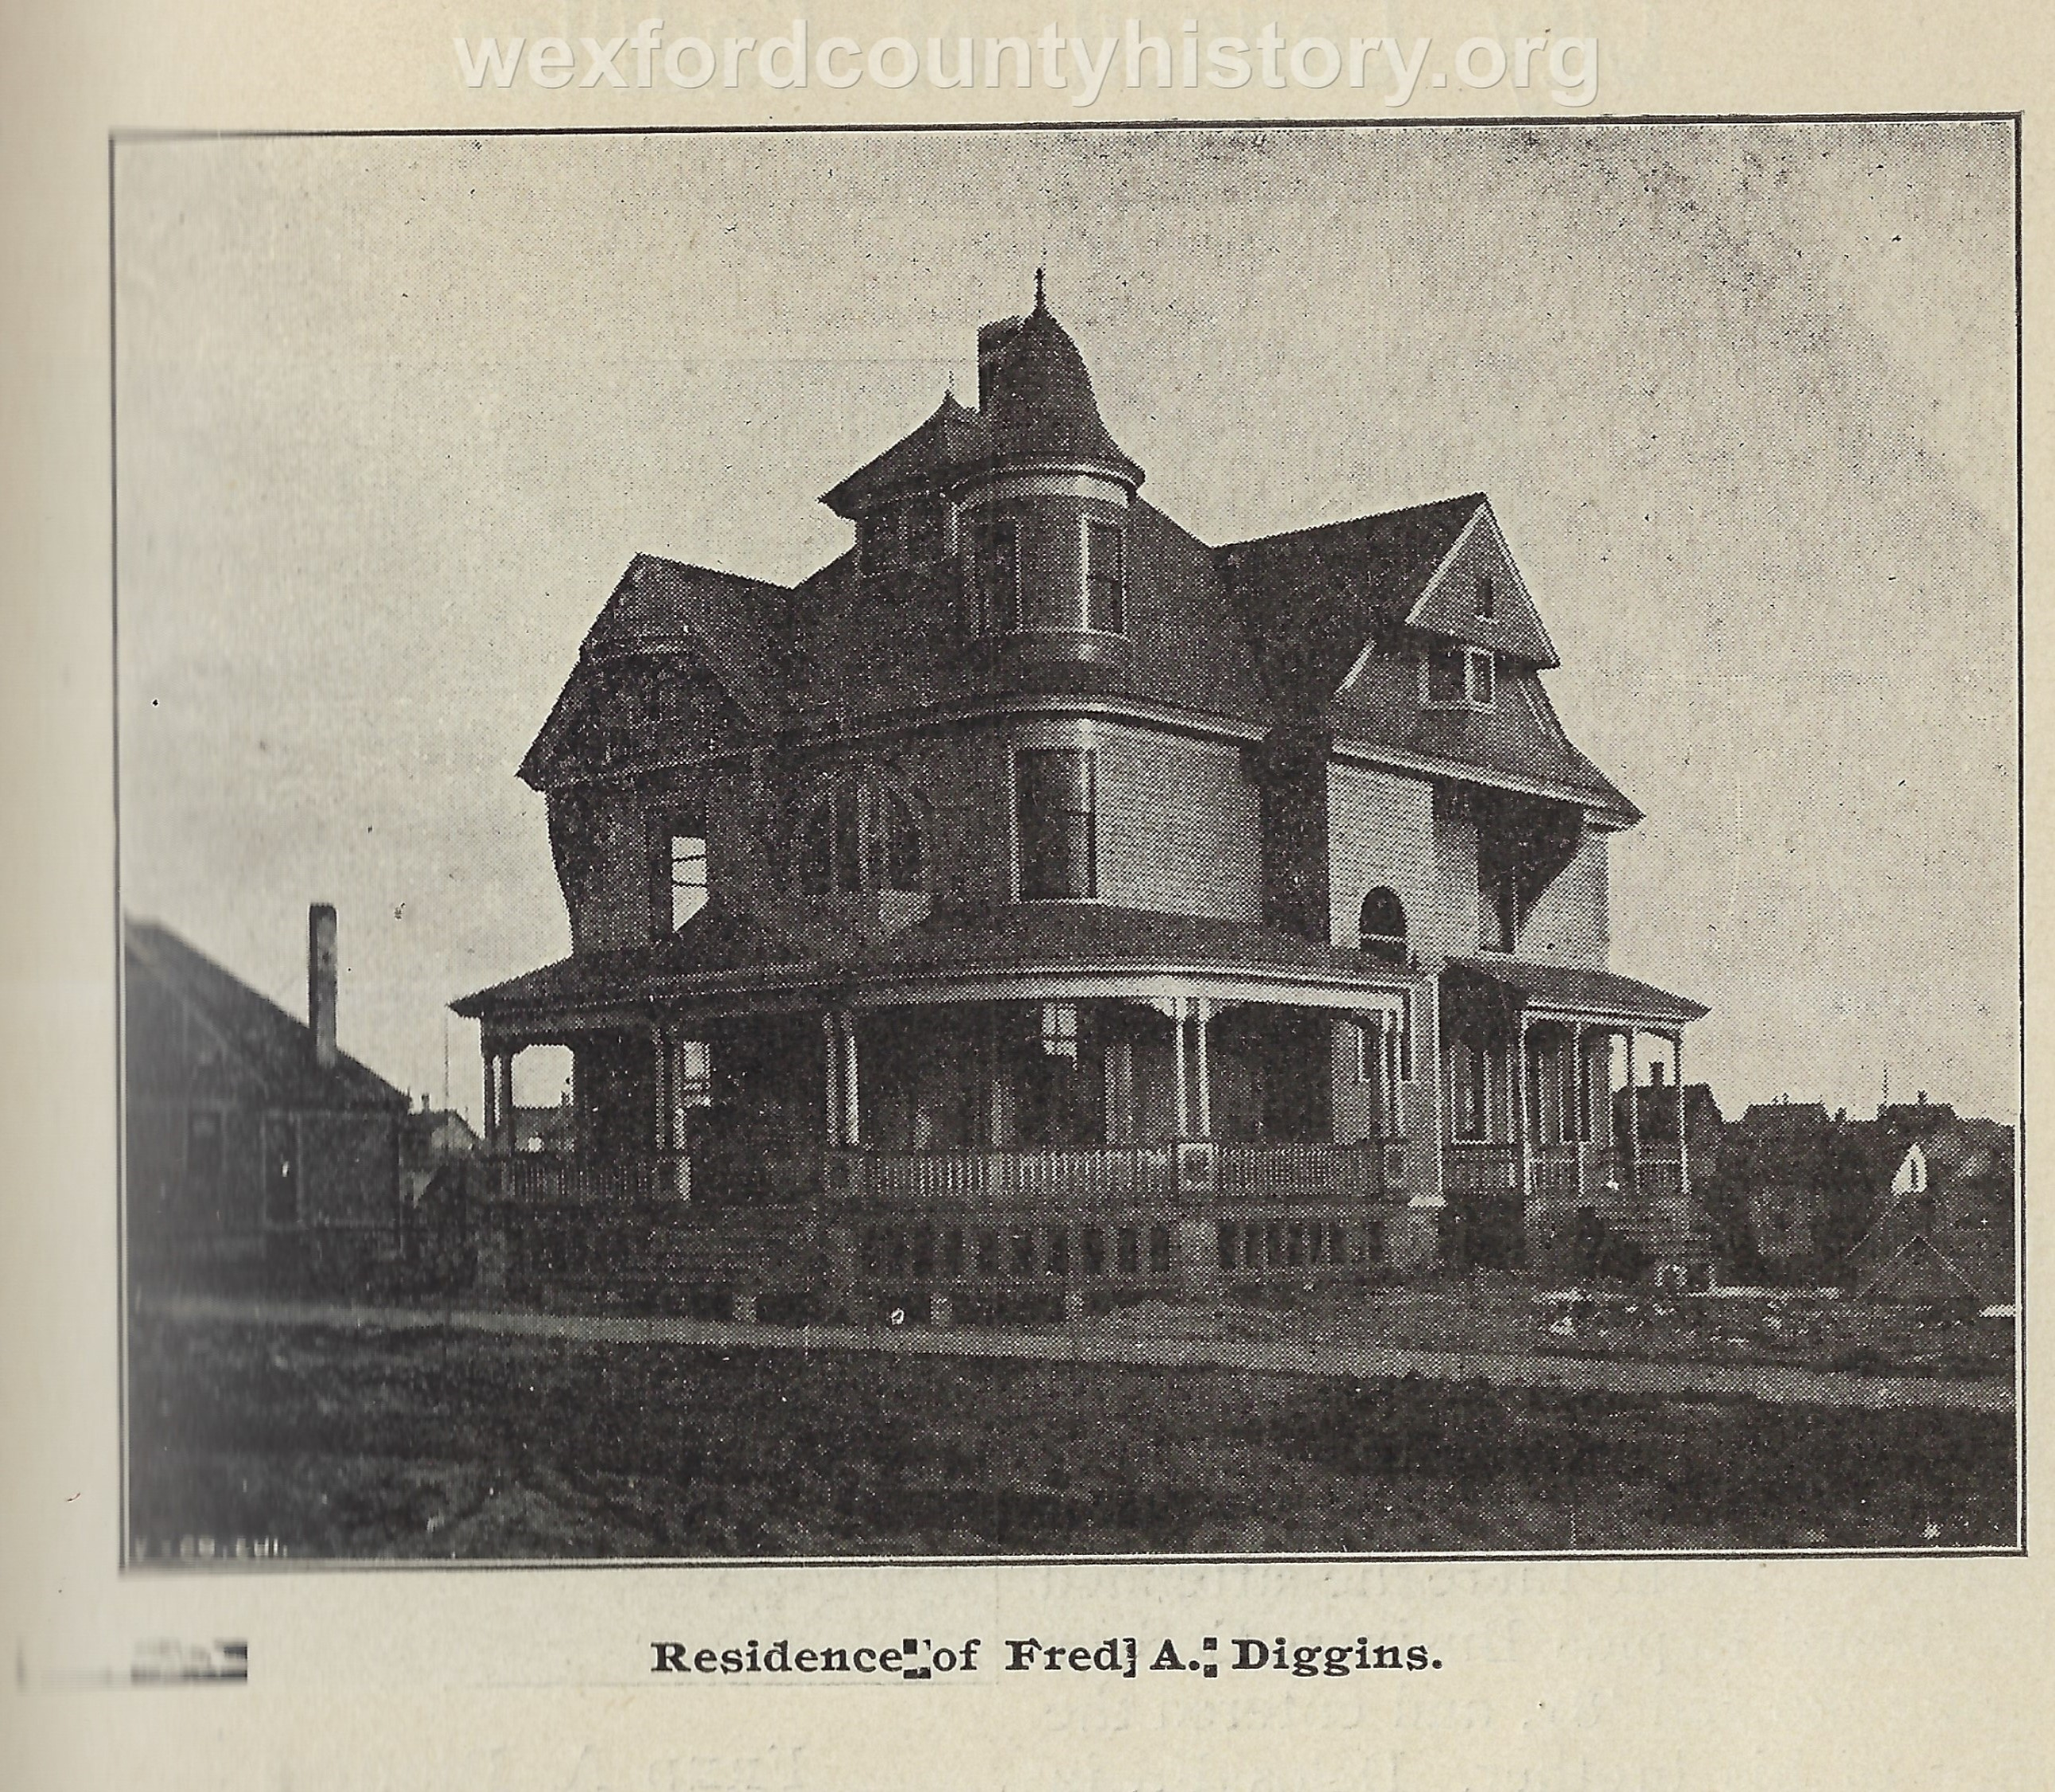 Fred A. Diggins House